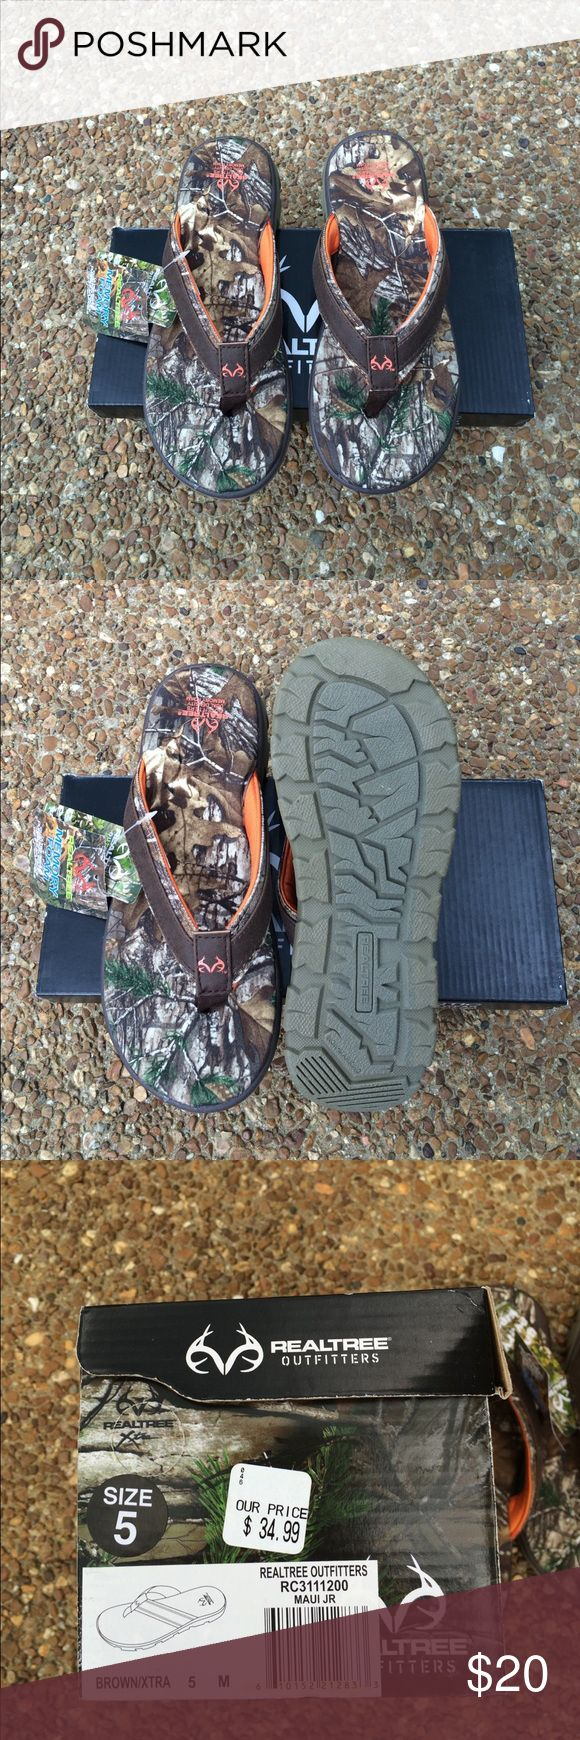 REALTREE outfitters camo flip flops Size 5....for men/women/boys/girls...memory foam fabric uppers... Will include box & decal......BUNDLE & SAVE Realtree Outfitters Shoes Sandals & Flip-Flops